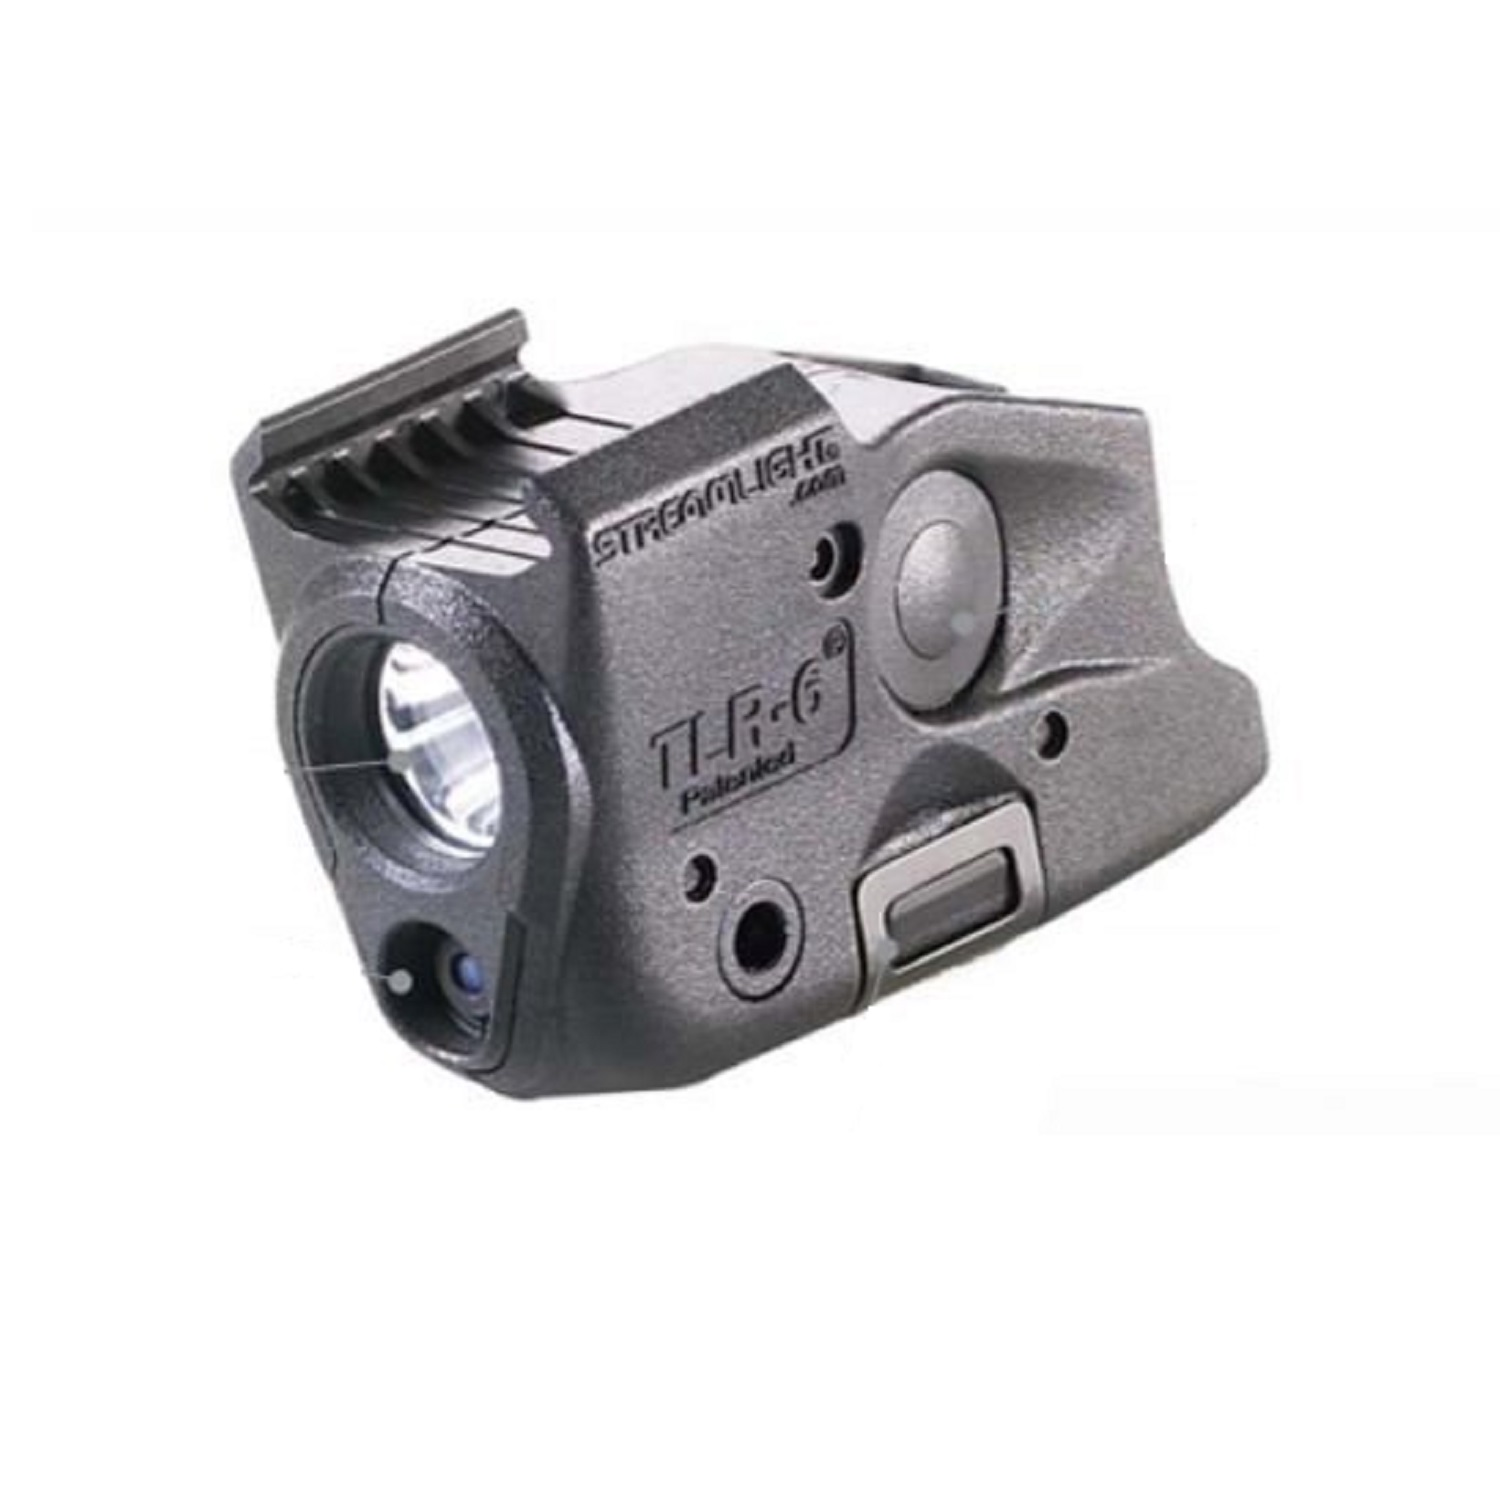 Streamlight 69291 TLR-6 Rail (SA XD) with white LED and red laser. Includes two by Streamlight